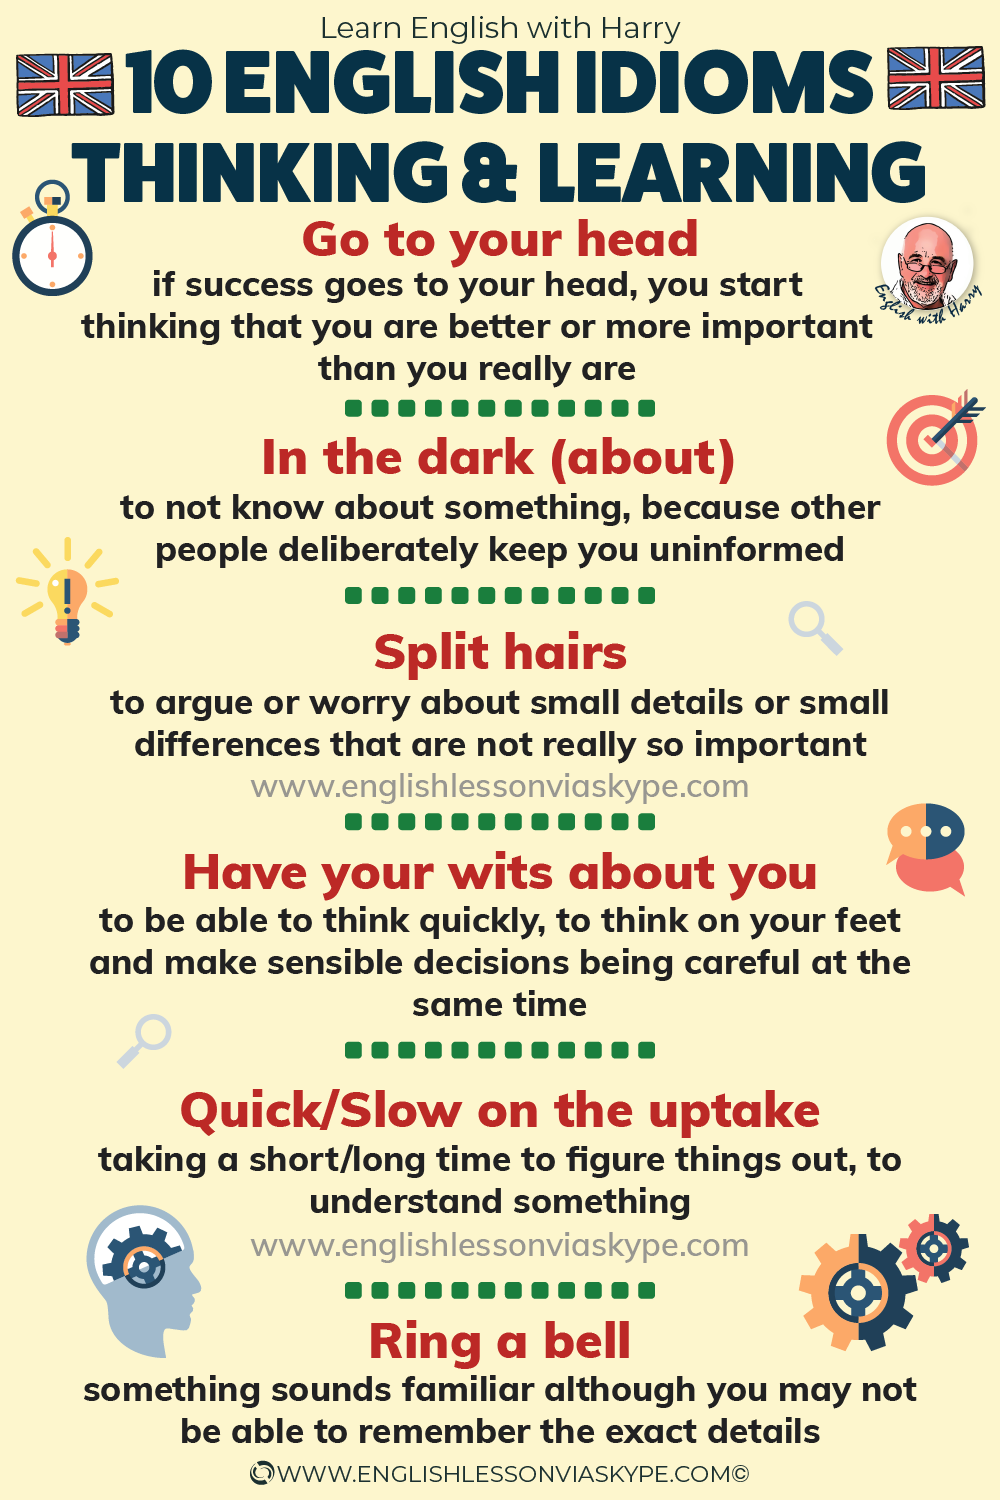 ENGLISH IDIOMS: Learn 10 idioms about thinking and learning. From intermediate to advanced English with www.englishlessonviaskype.com #learnenglish #englishlessons #EnglishTeacher #vocabulary #ingles #อังกฤษ #английский #aprenderingles #english #cursodeingles #учианглийский #vocabulário #dicasdeingles #learningenglish #ingilizce #englishgrammar #englishvocabulary #ielts #idiomas